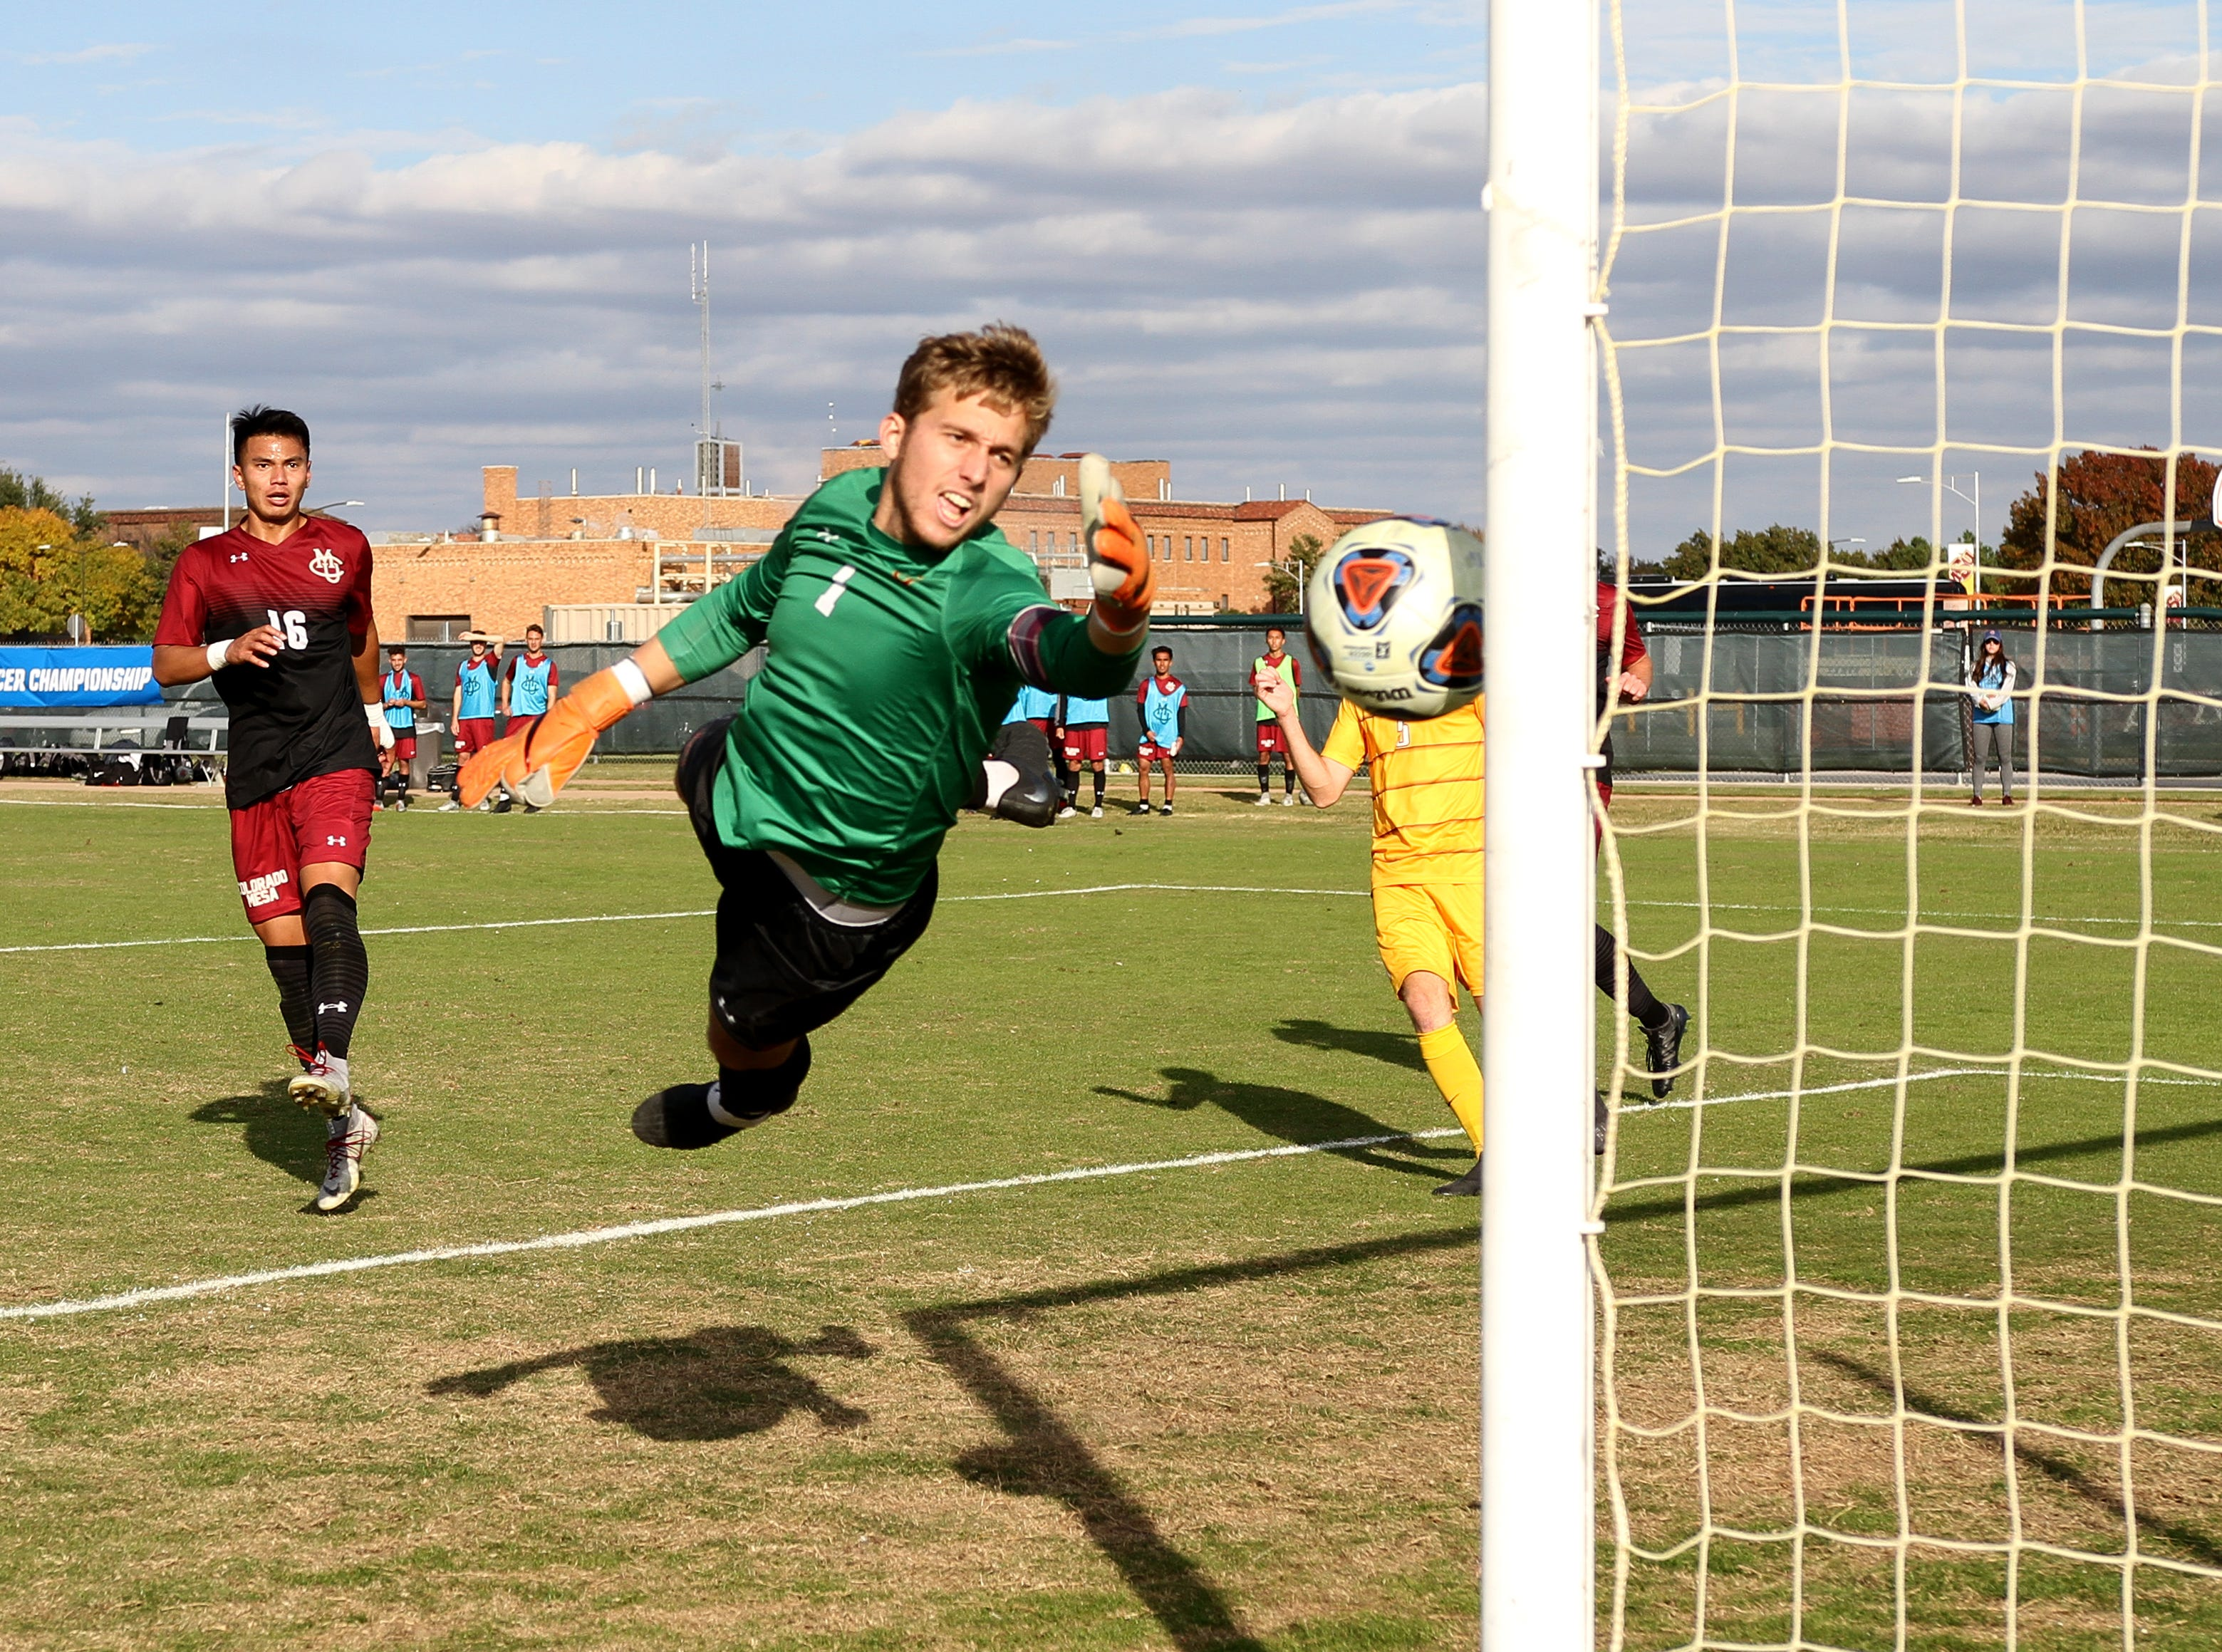 Colorado Mesa's Briley Guarneri reaches as the ball hits the post Sunday, Nov. 11, 2018, in the second round of the NCAA Division II Tournament against Midwestern State at Stang Field. The Mustangs fell to the Mavericks 5-4 in penalty kicks.